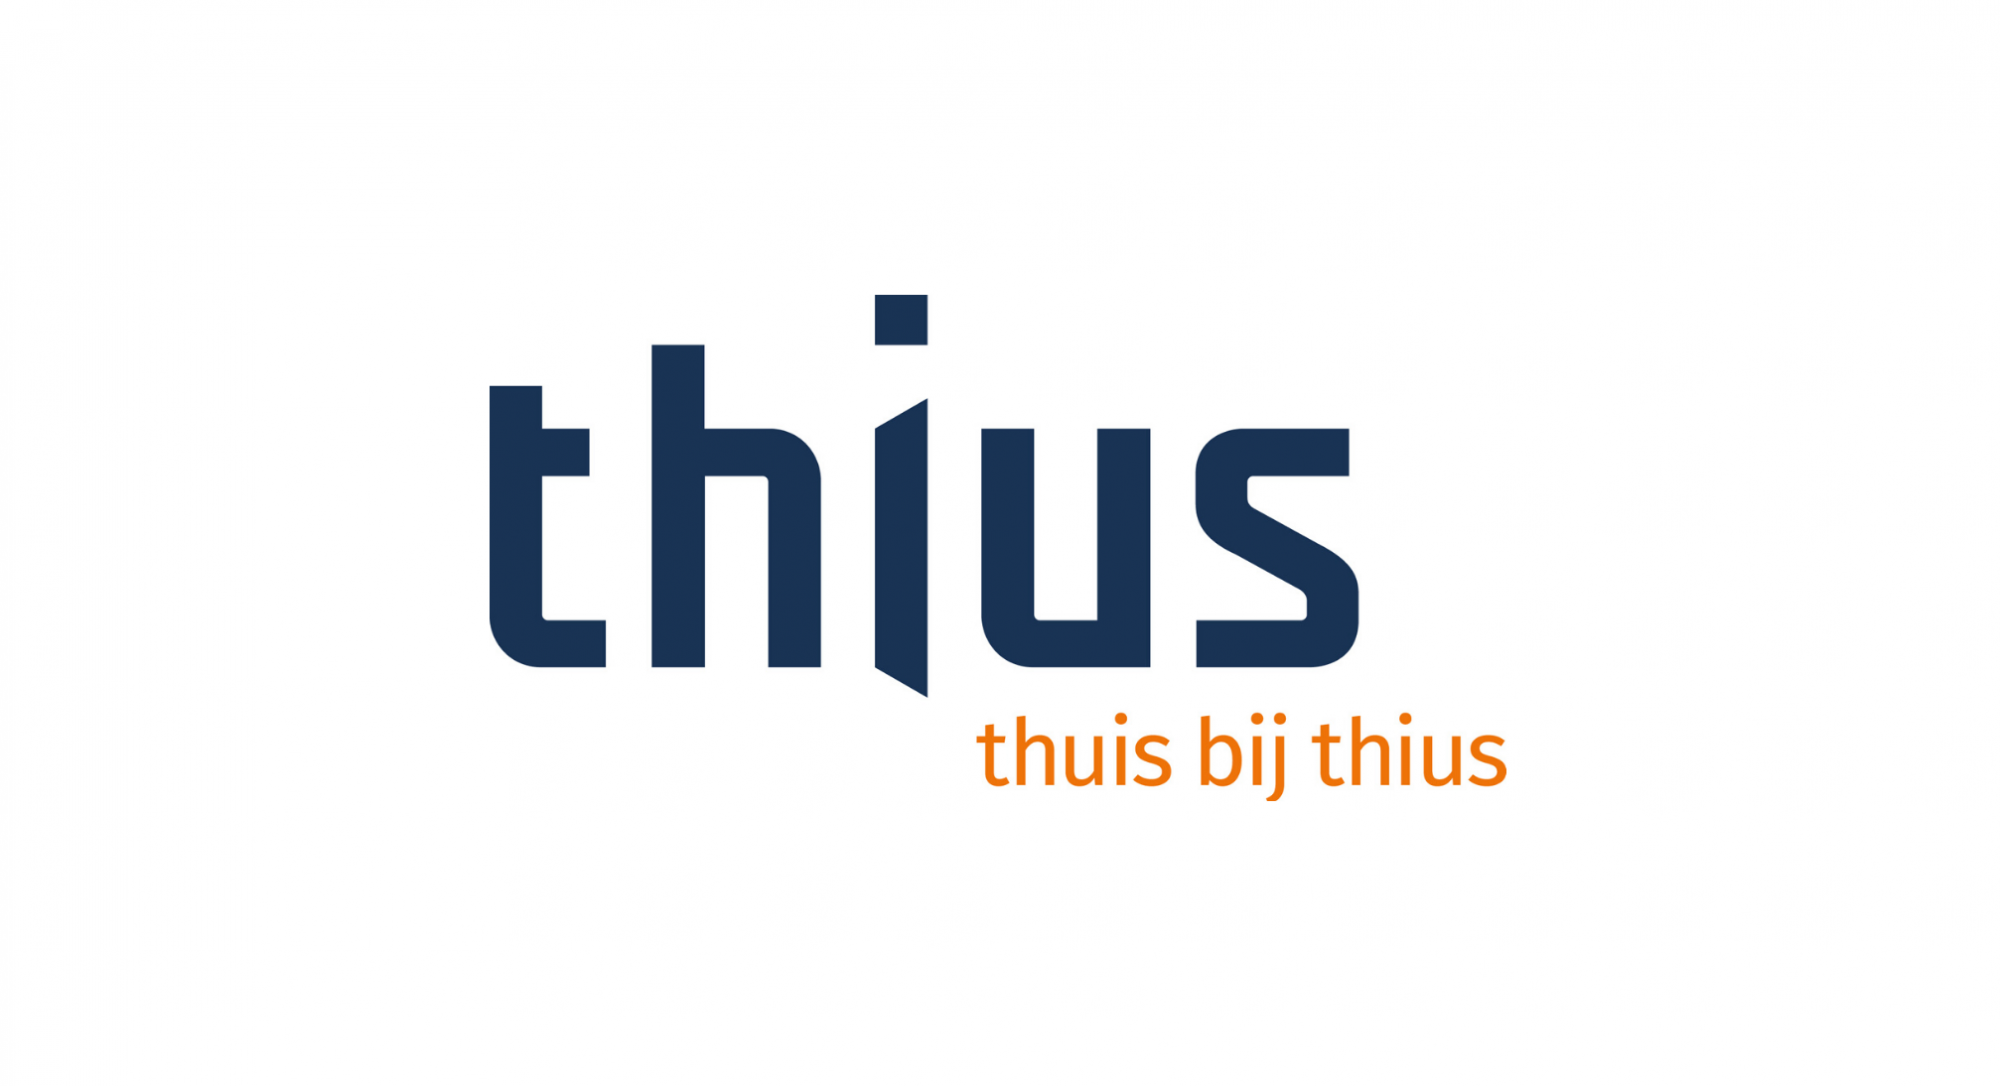 Thius is live!